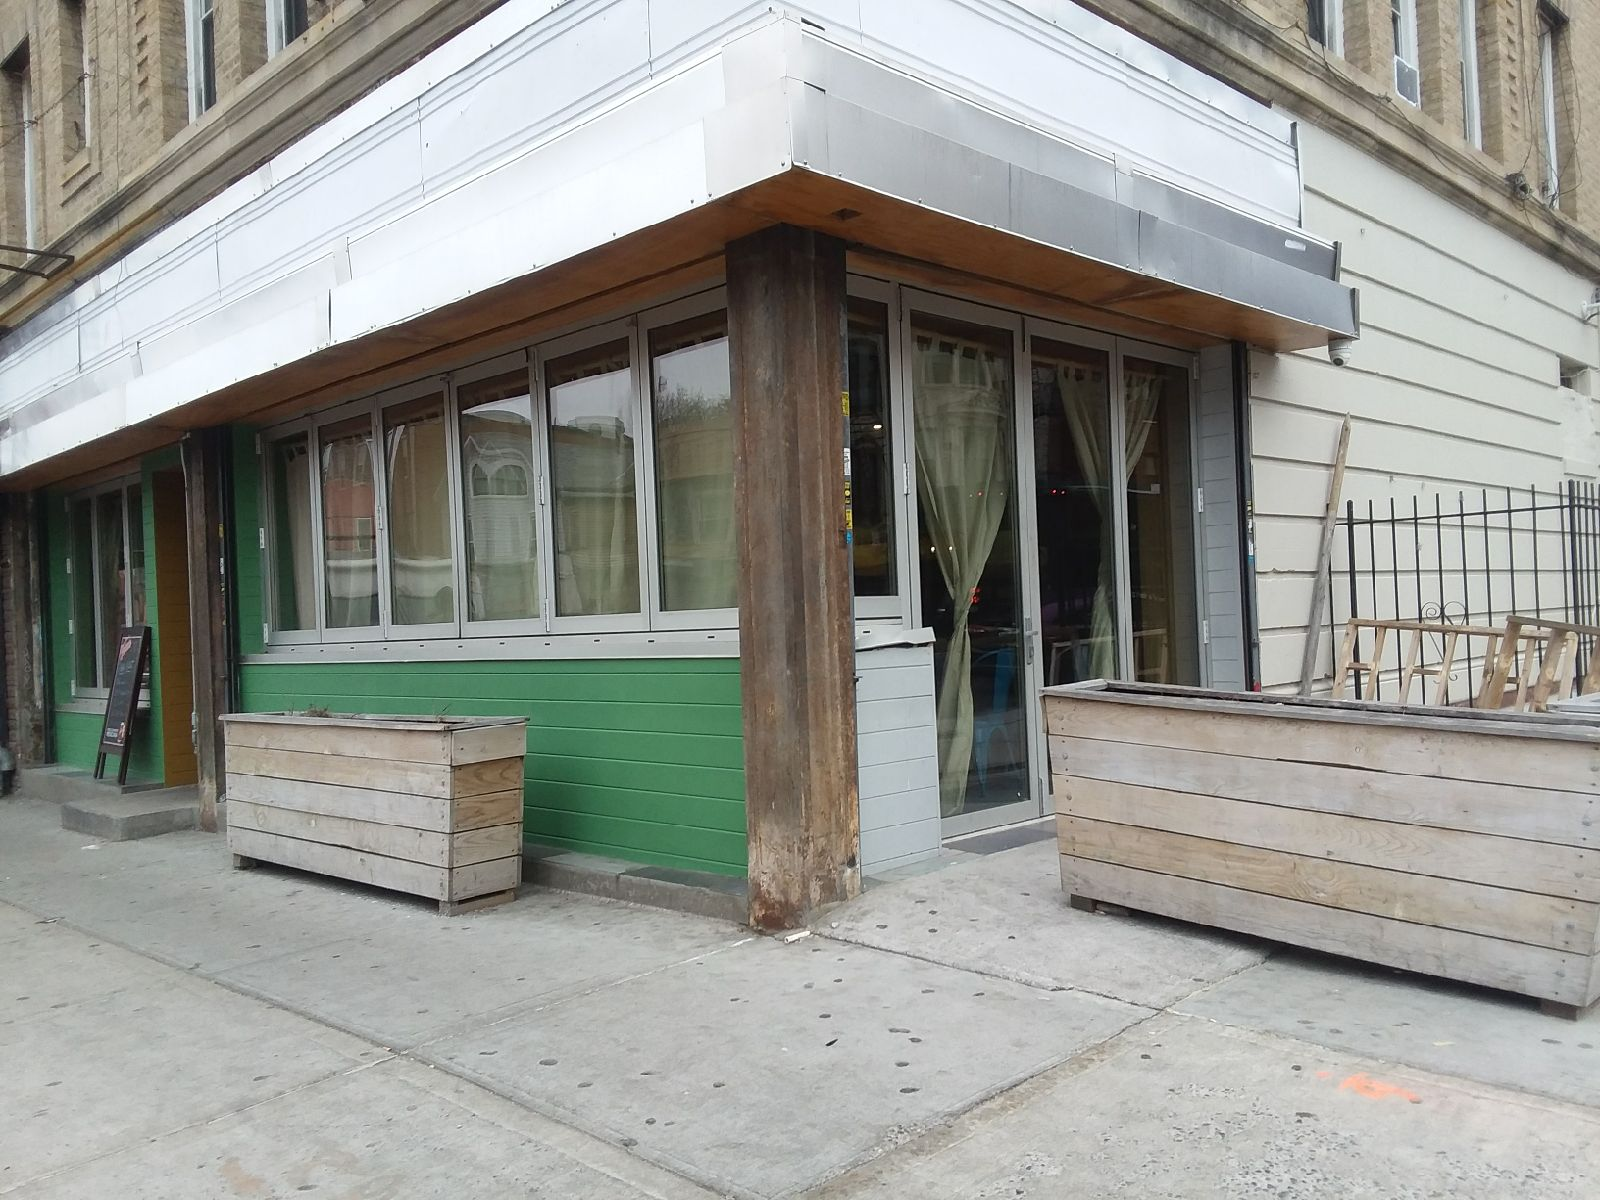 OBK Oyo's Bar and Grill (formerly Summerhill) at 637 Nostrand Avenue. (Photo credit: Roger Myers)